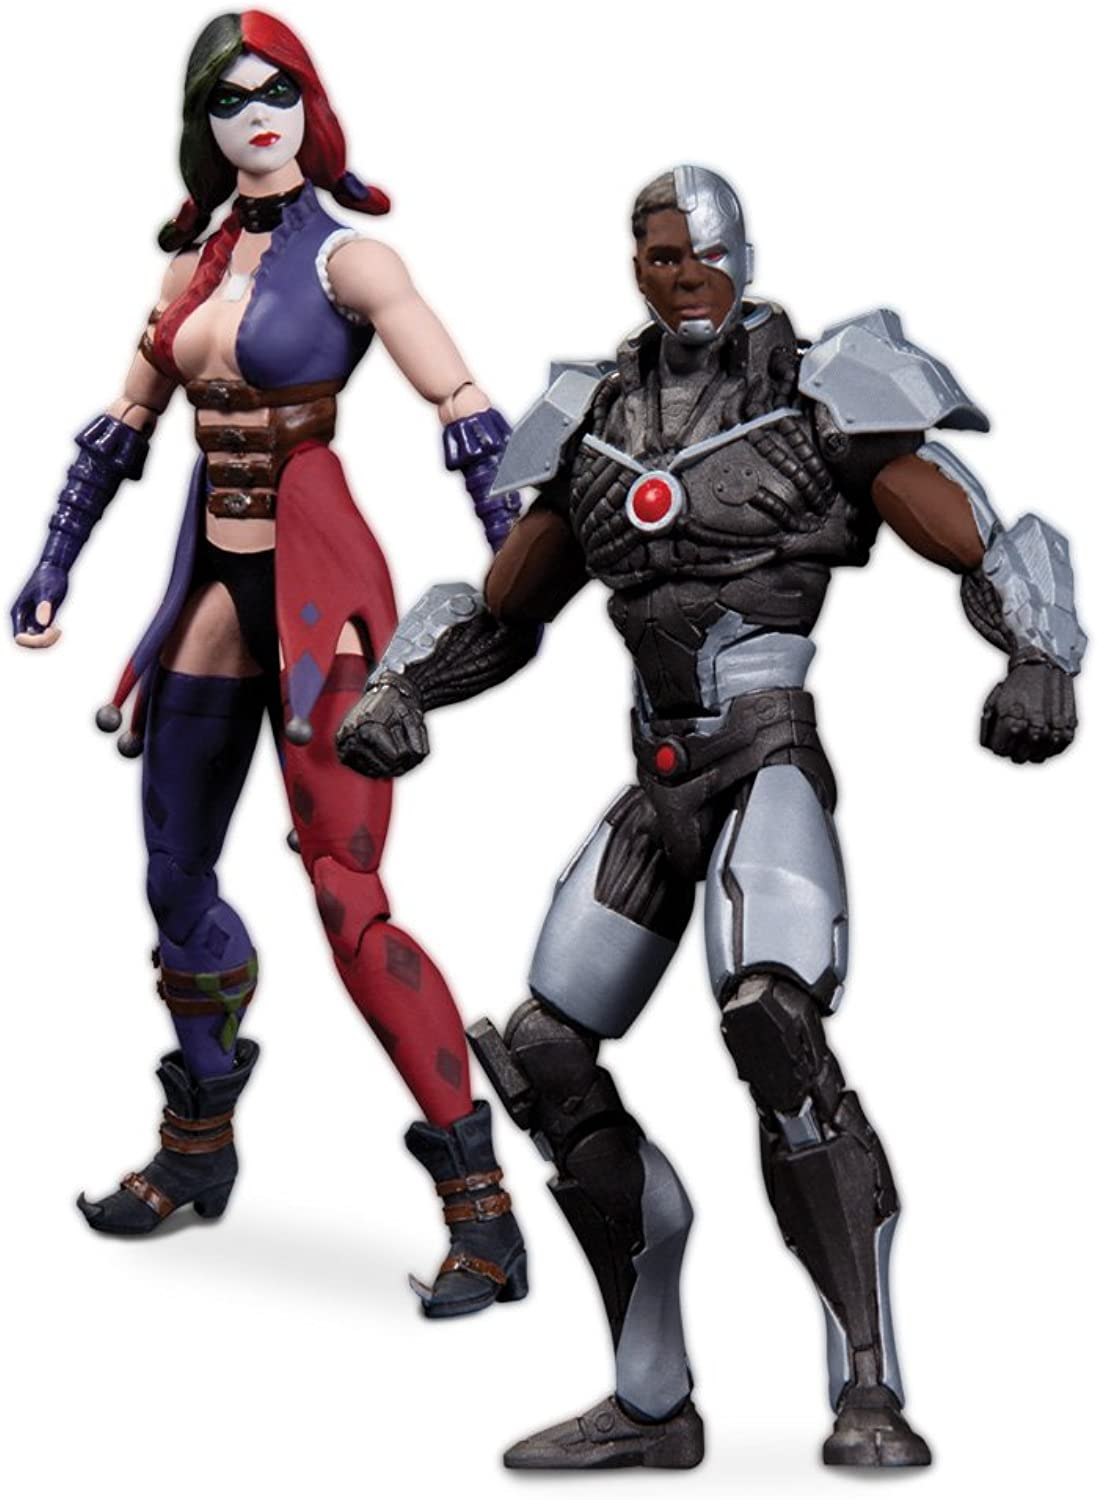 Injustice Cyborg vs. Harley Quinn DC Collectibles Action Figures